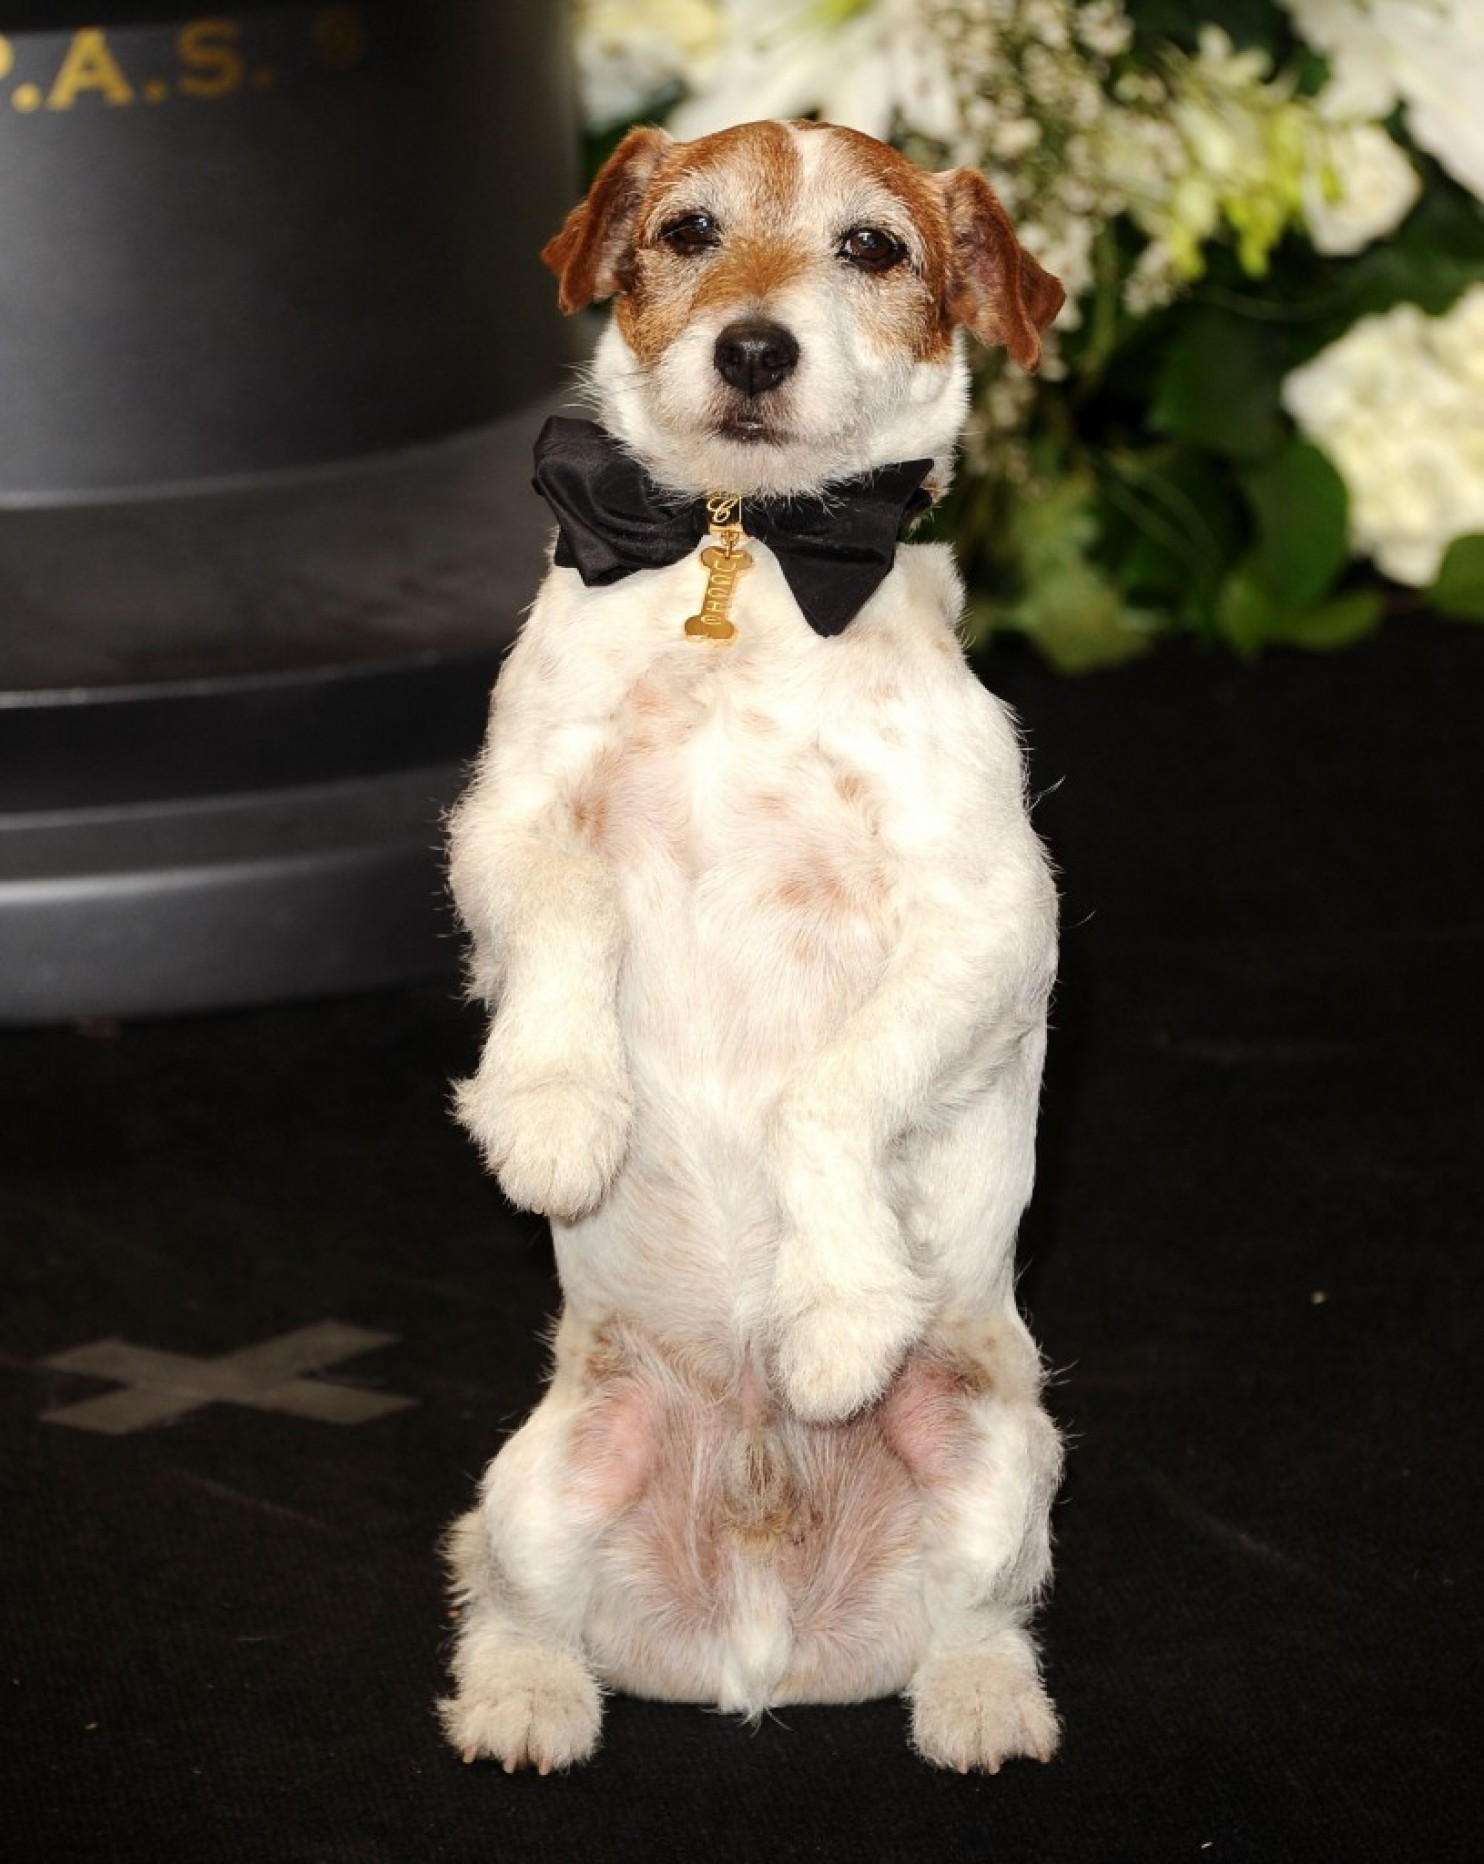 https://www.washingtonpost.com/news/morning-mix/wp/2015/08/12/uggie-dog-star-of-the-artist-is-dead-at-13/